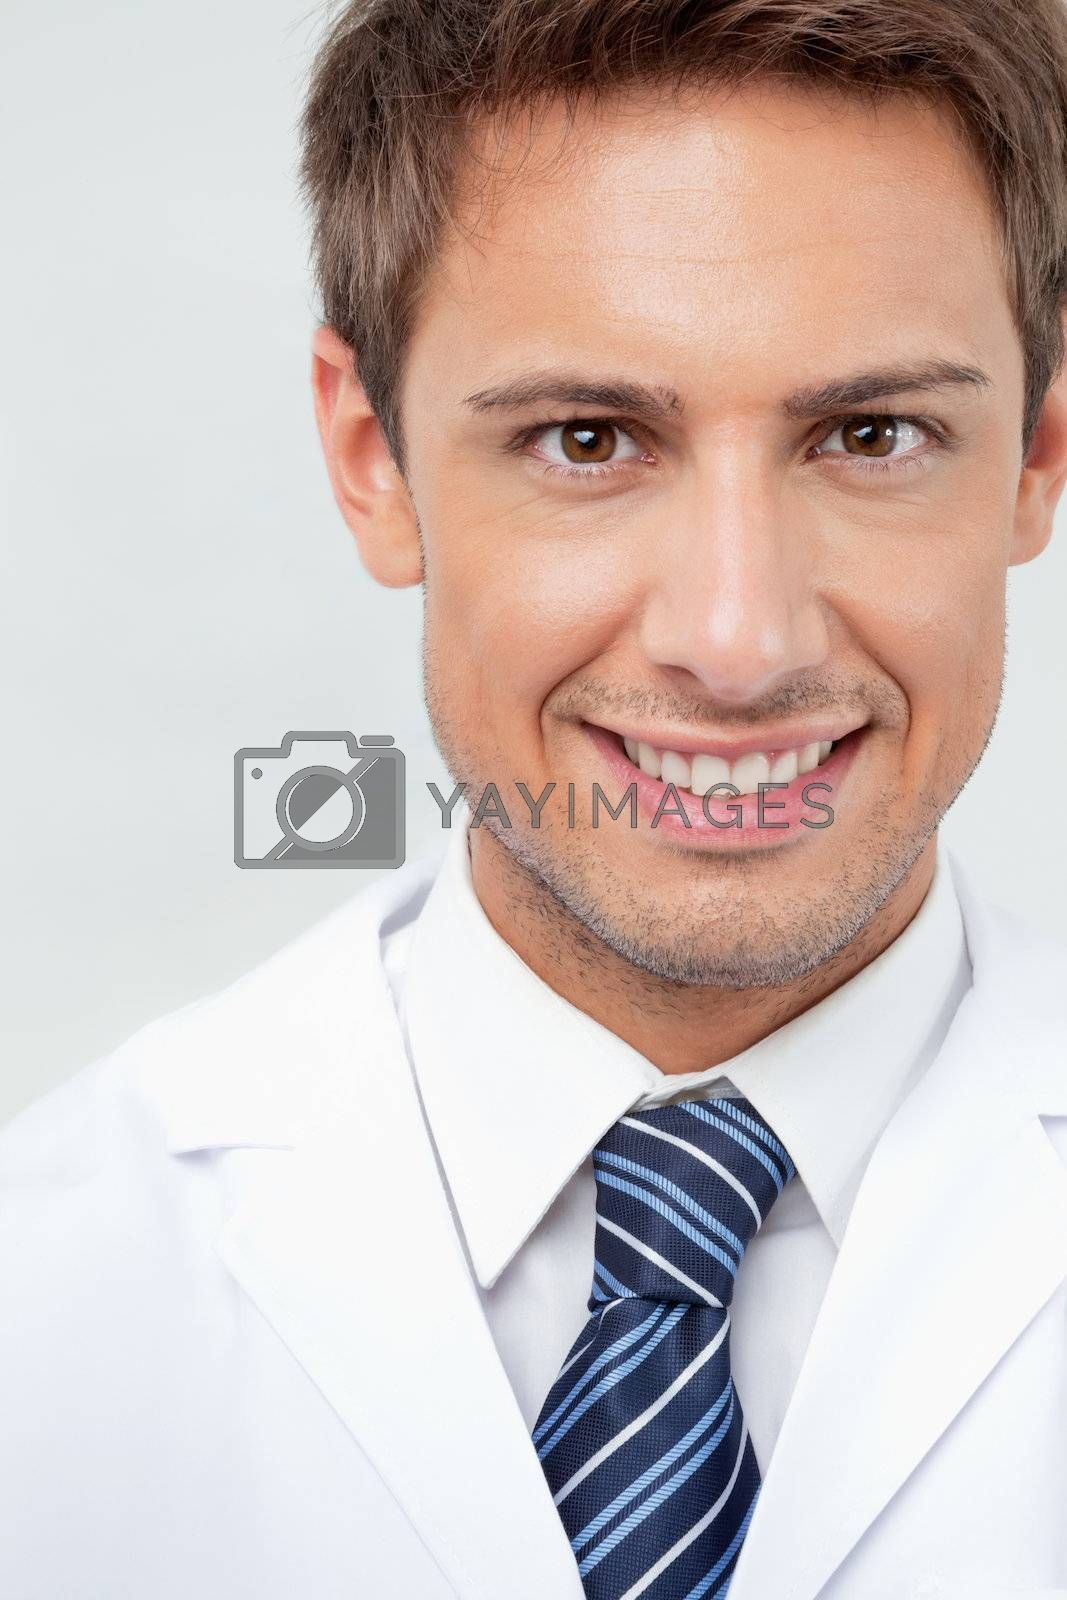 Closeup portrait of male dentist smiling